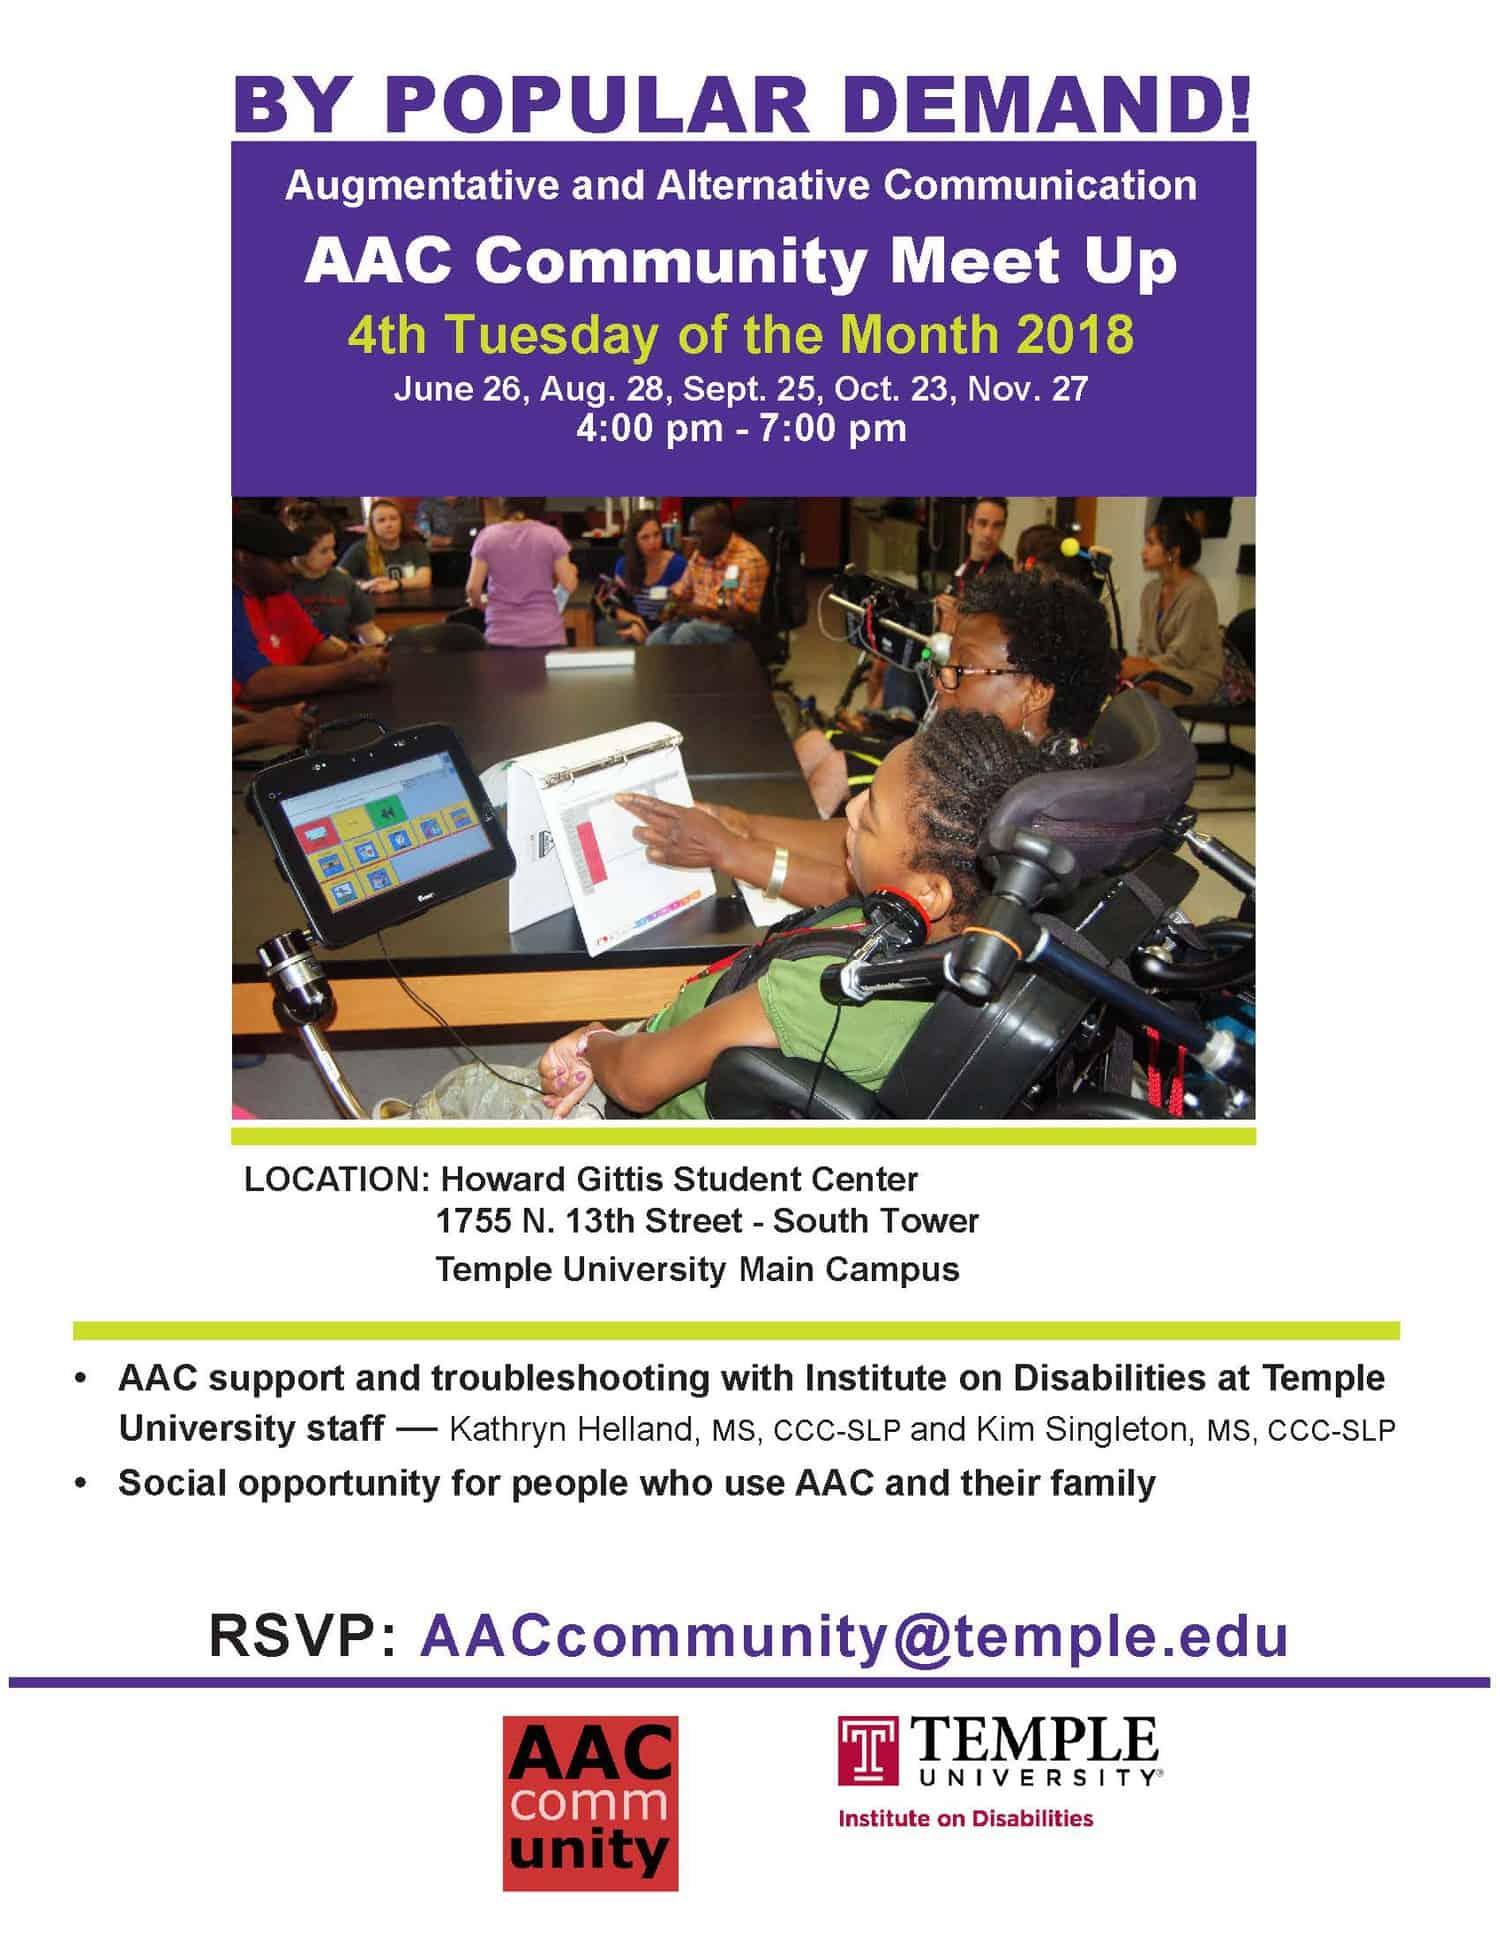 AAC Meet Up Flyer image.